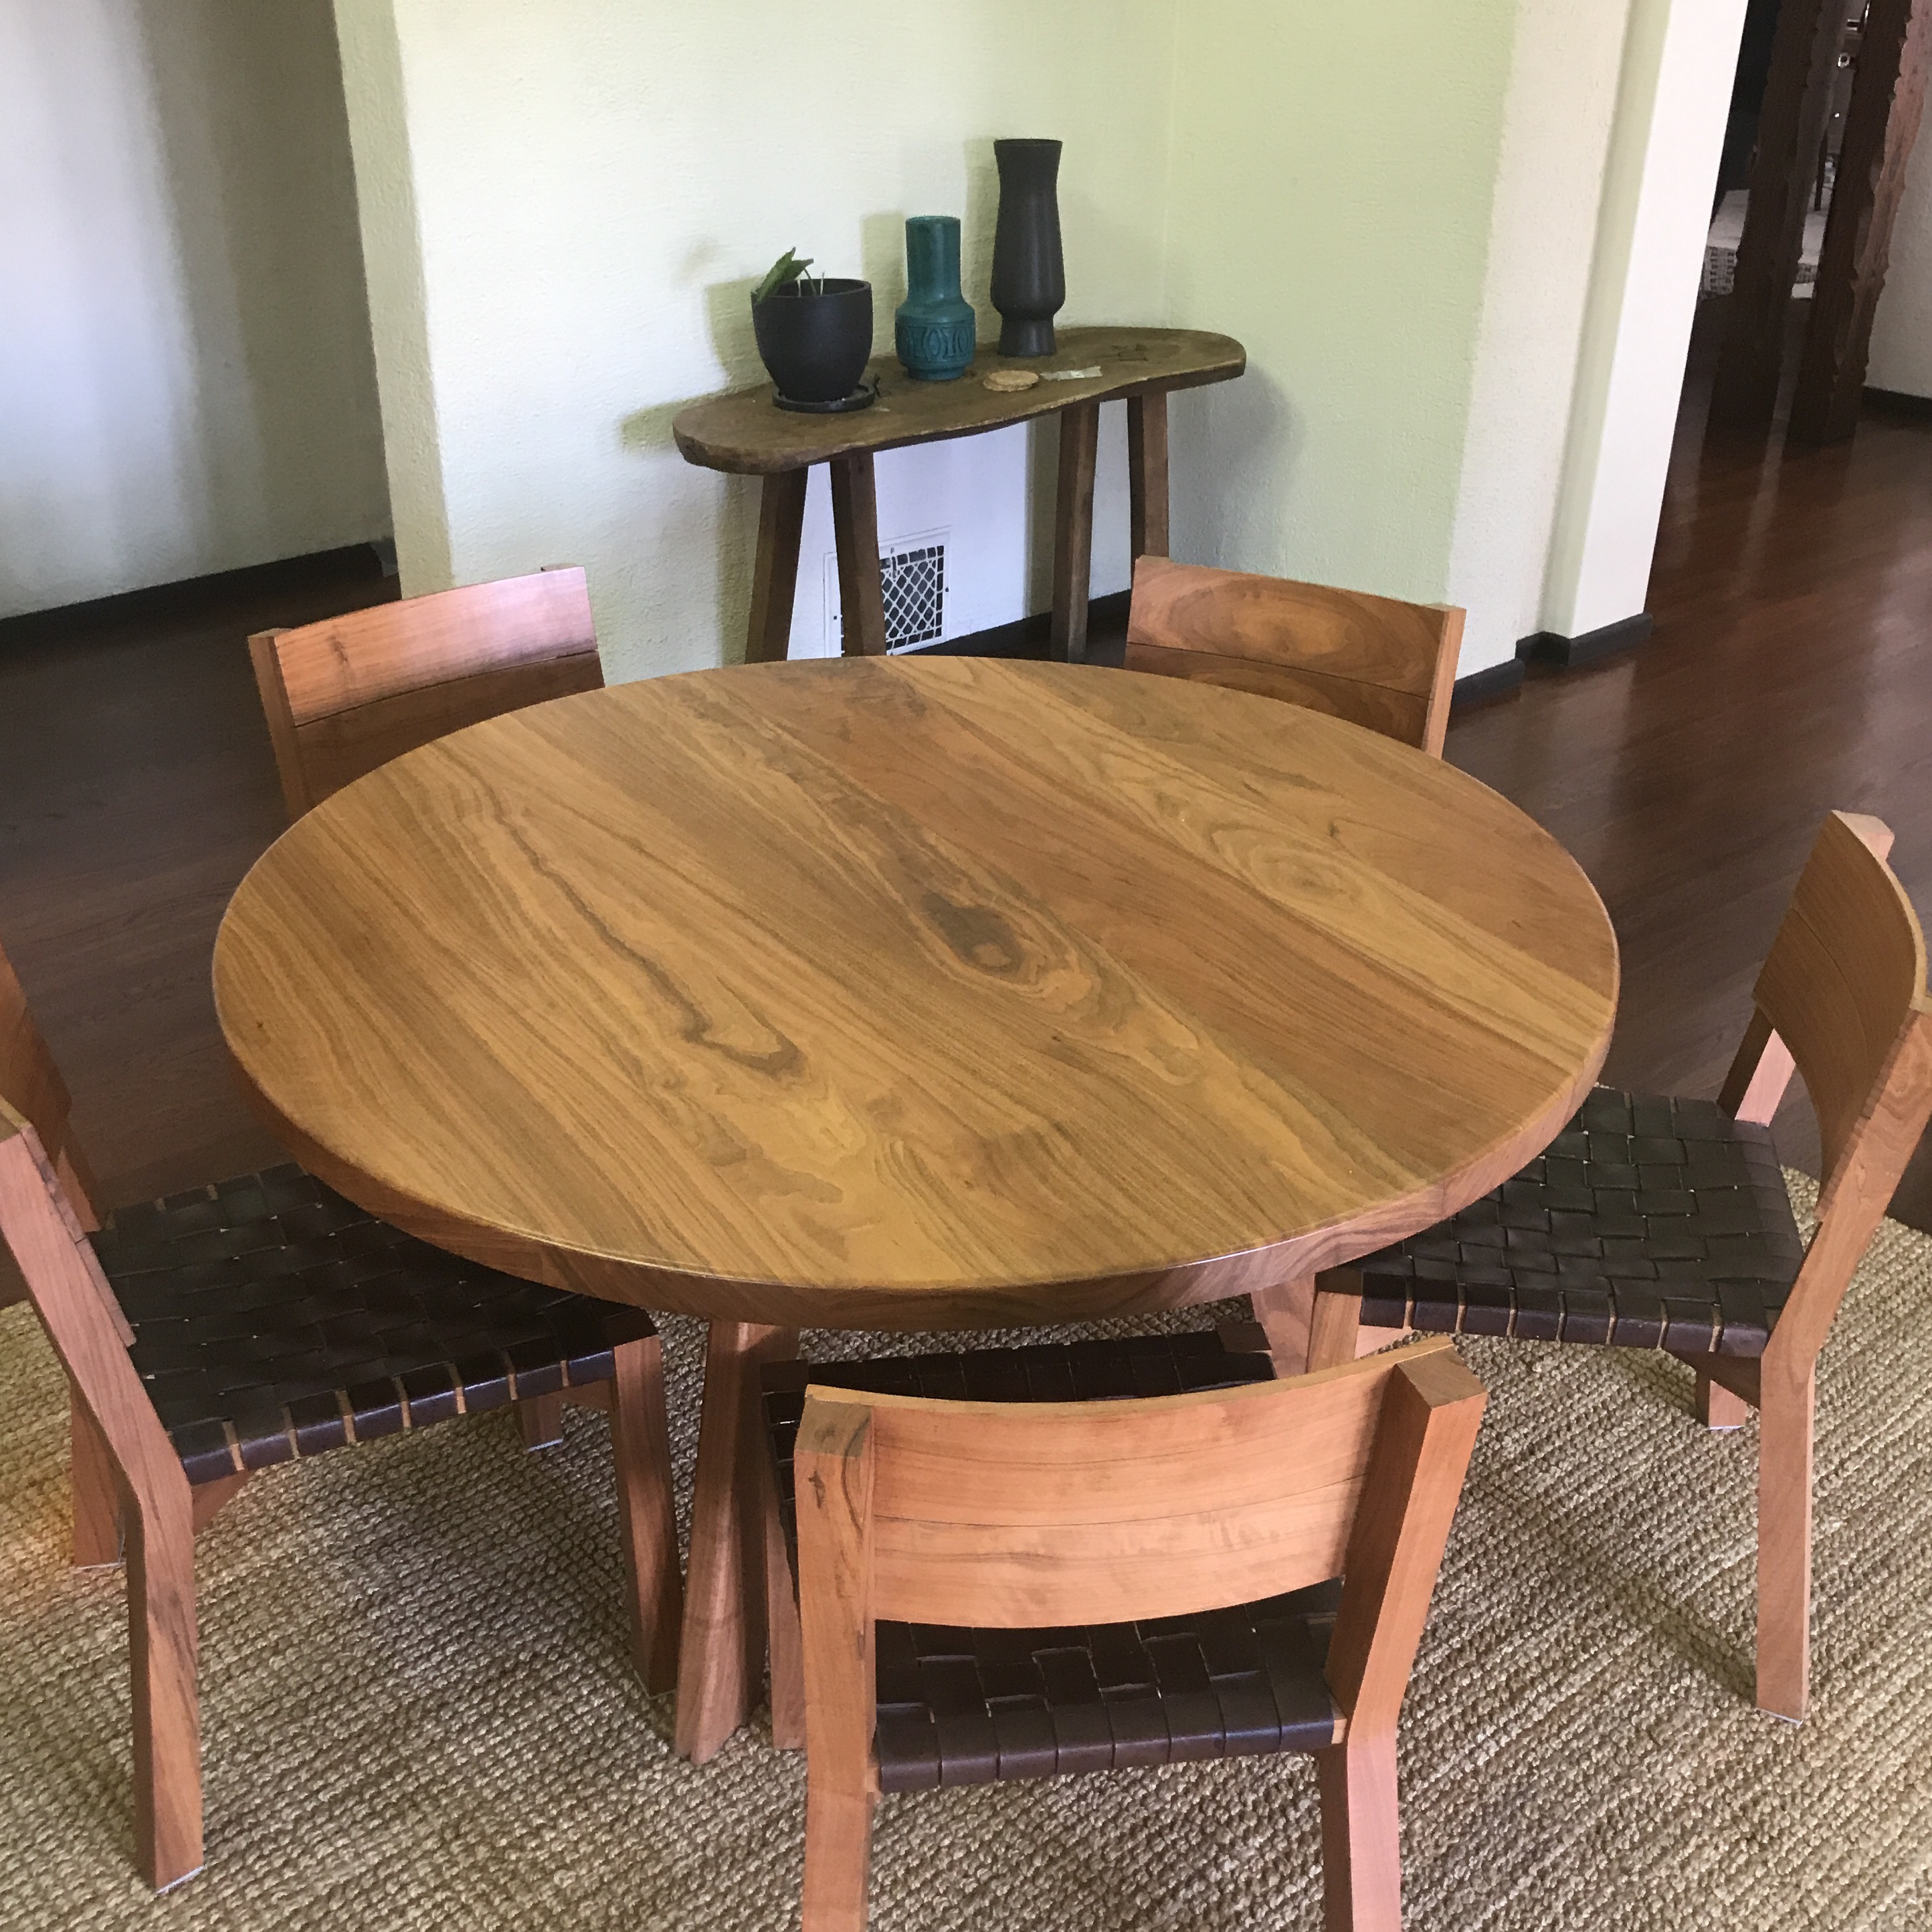 Solid Walnut U0027De La Espadau0027 Dining Room Set. I Have Owned It For